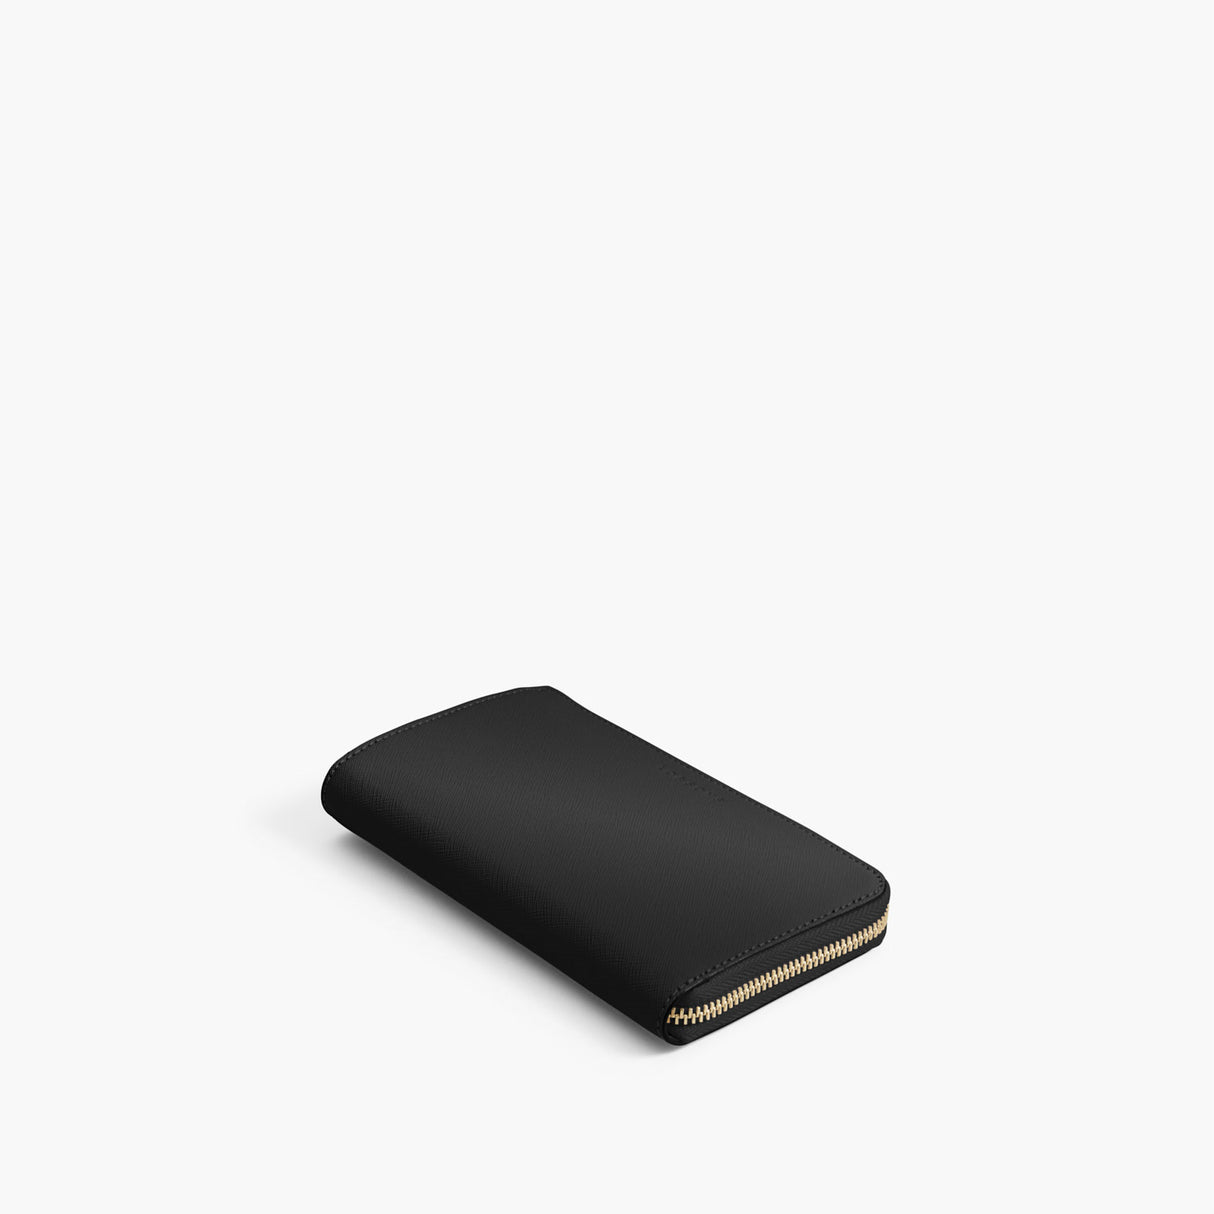 Front - The Leather Wallet - Saffiano Leather - Black / Gold / Grey - Small Accessory - Lo & Sons